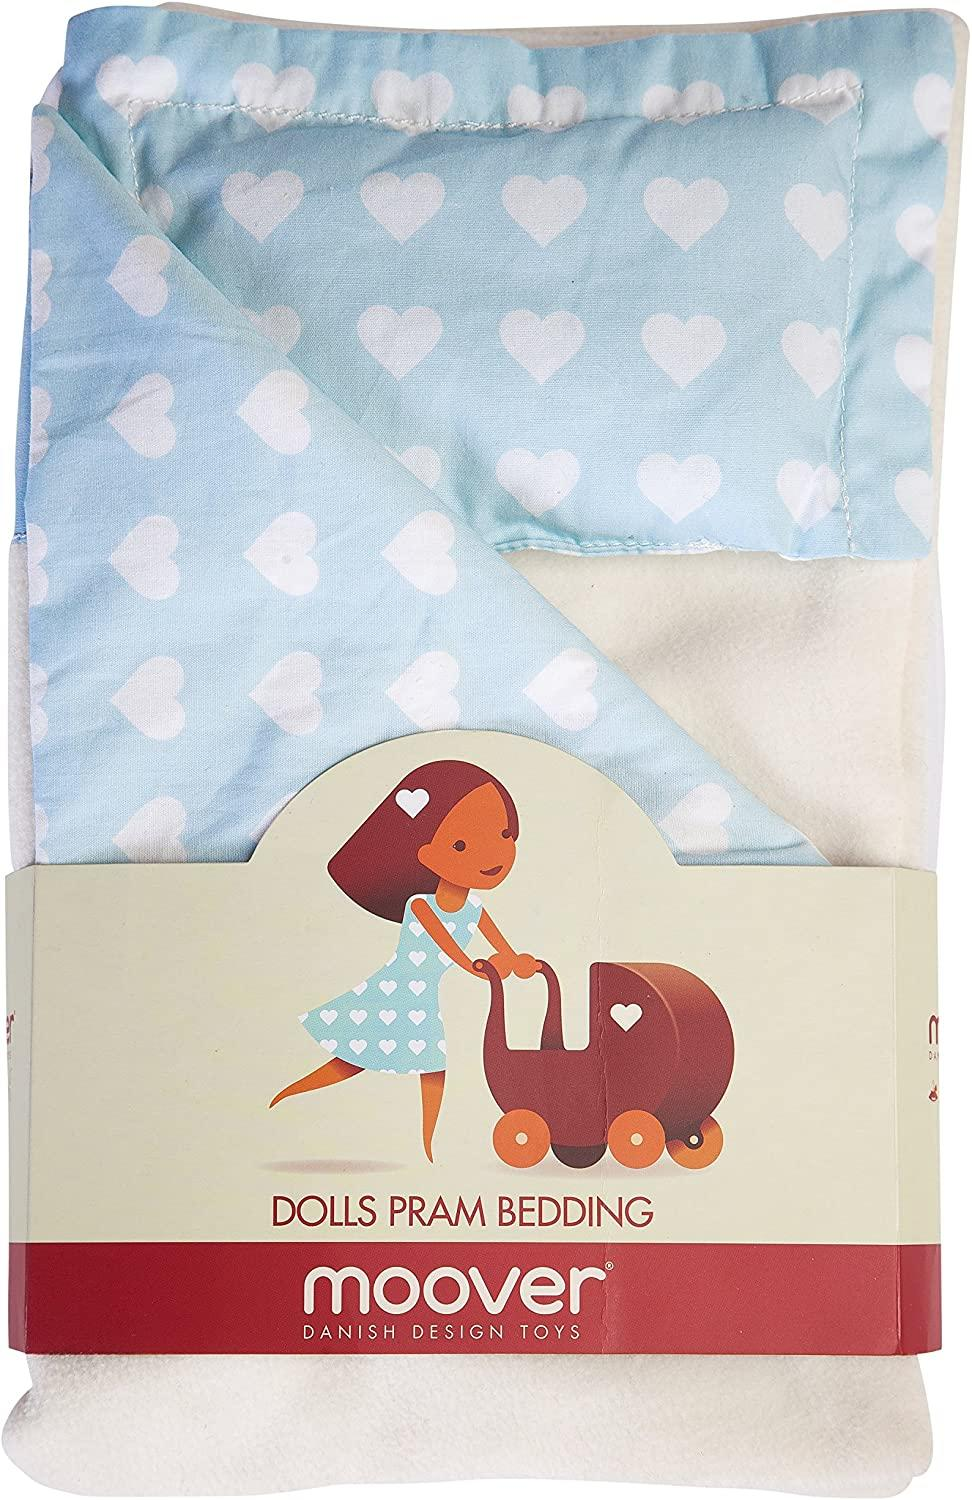 Image showing blue and white heart-patterned dolls pram bedding.